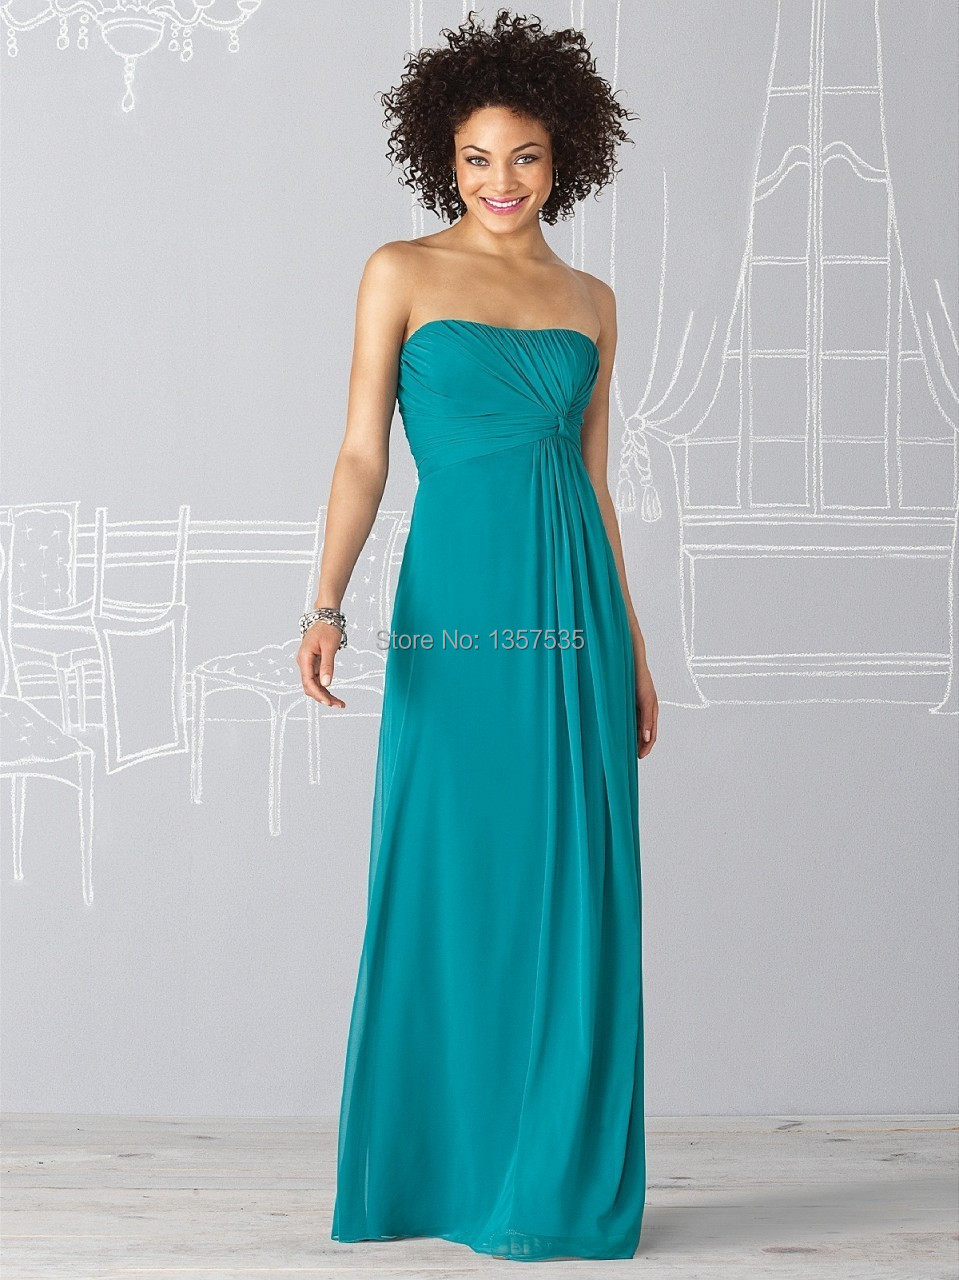 New arrival 2014 turquoise bridemaid dresses pleat vestido for Turquoise bridesmaid dresses for beach wedding